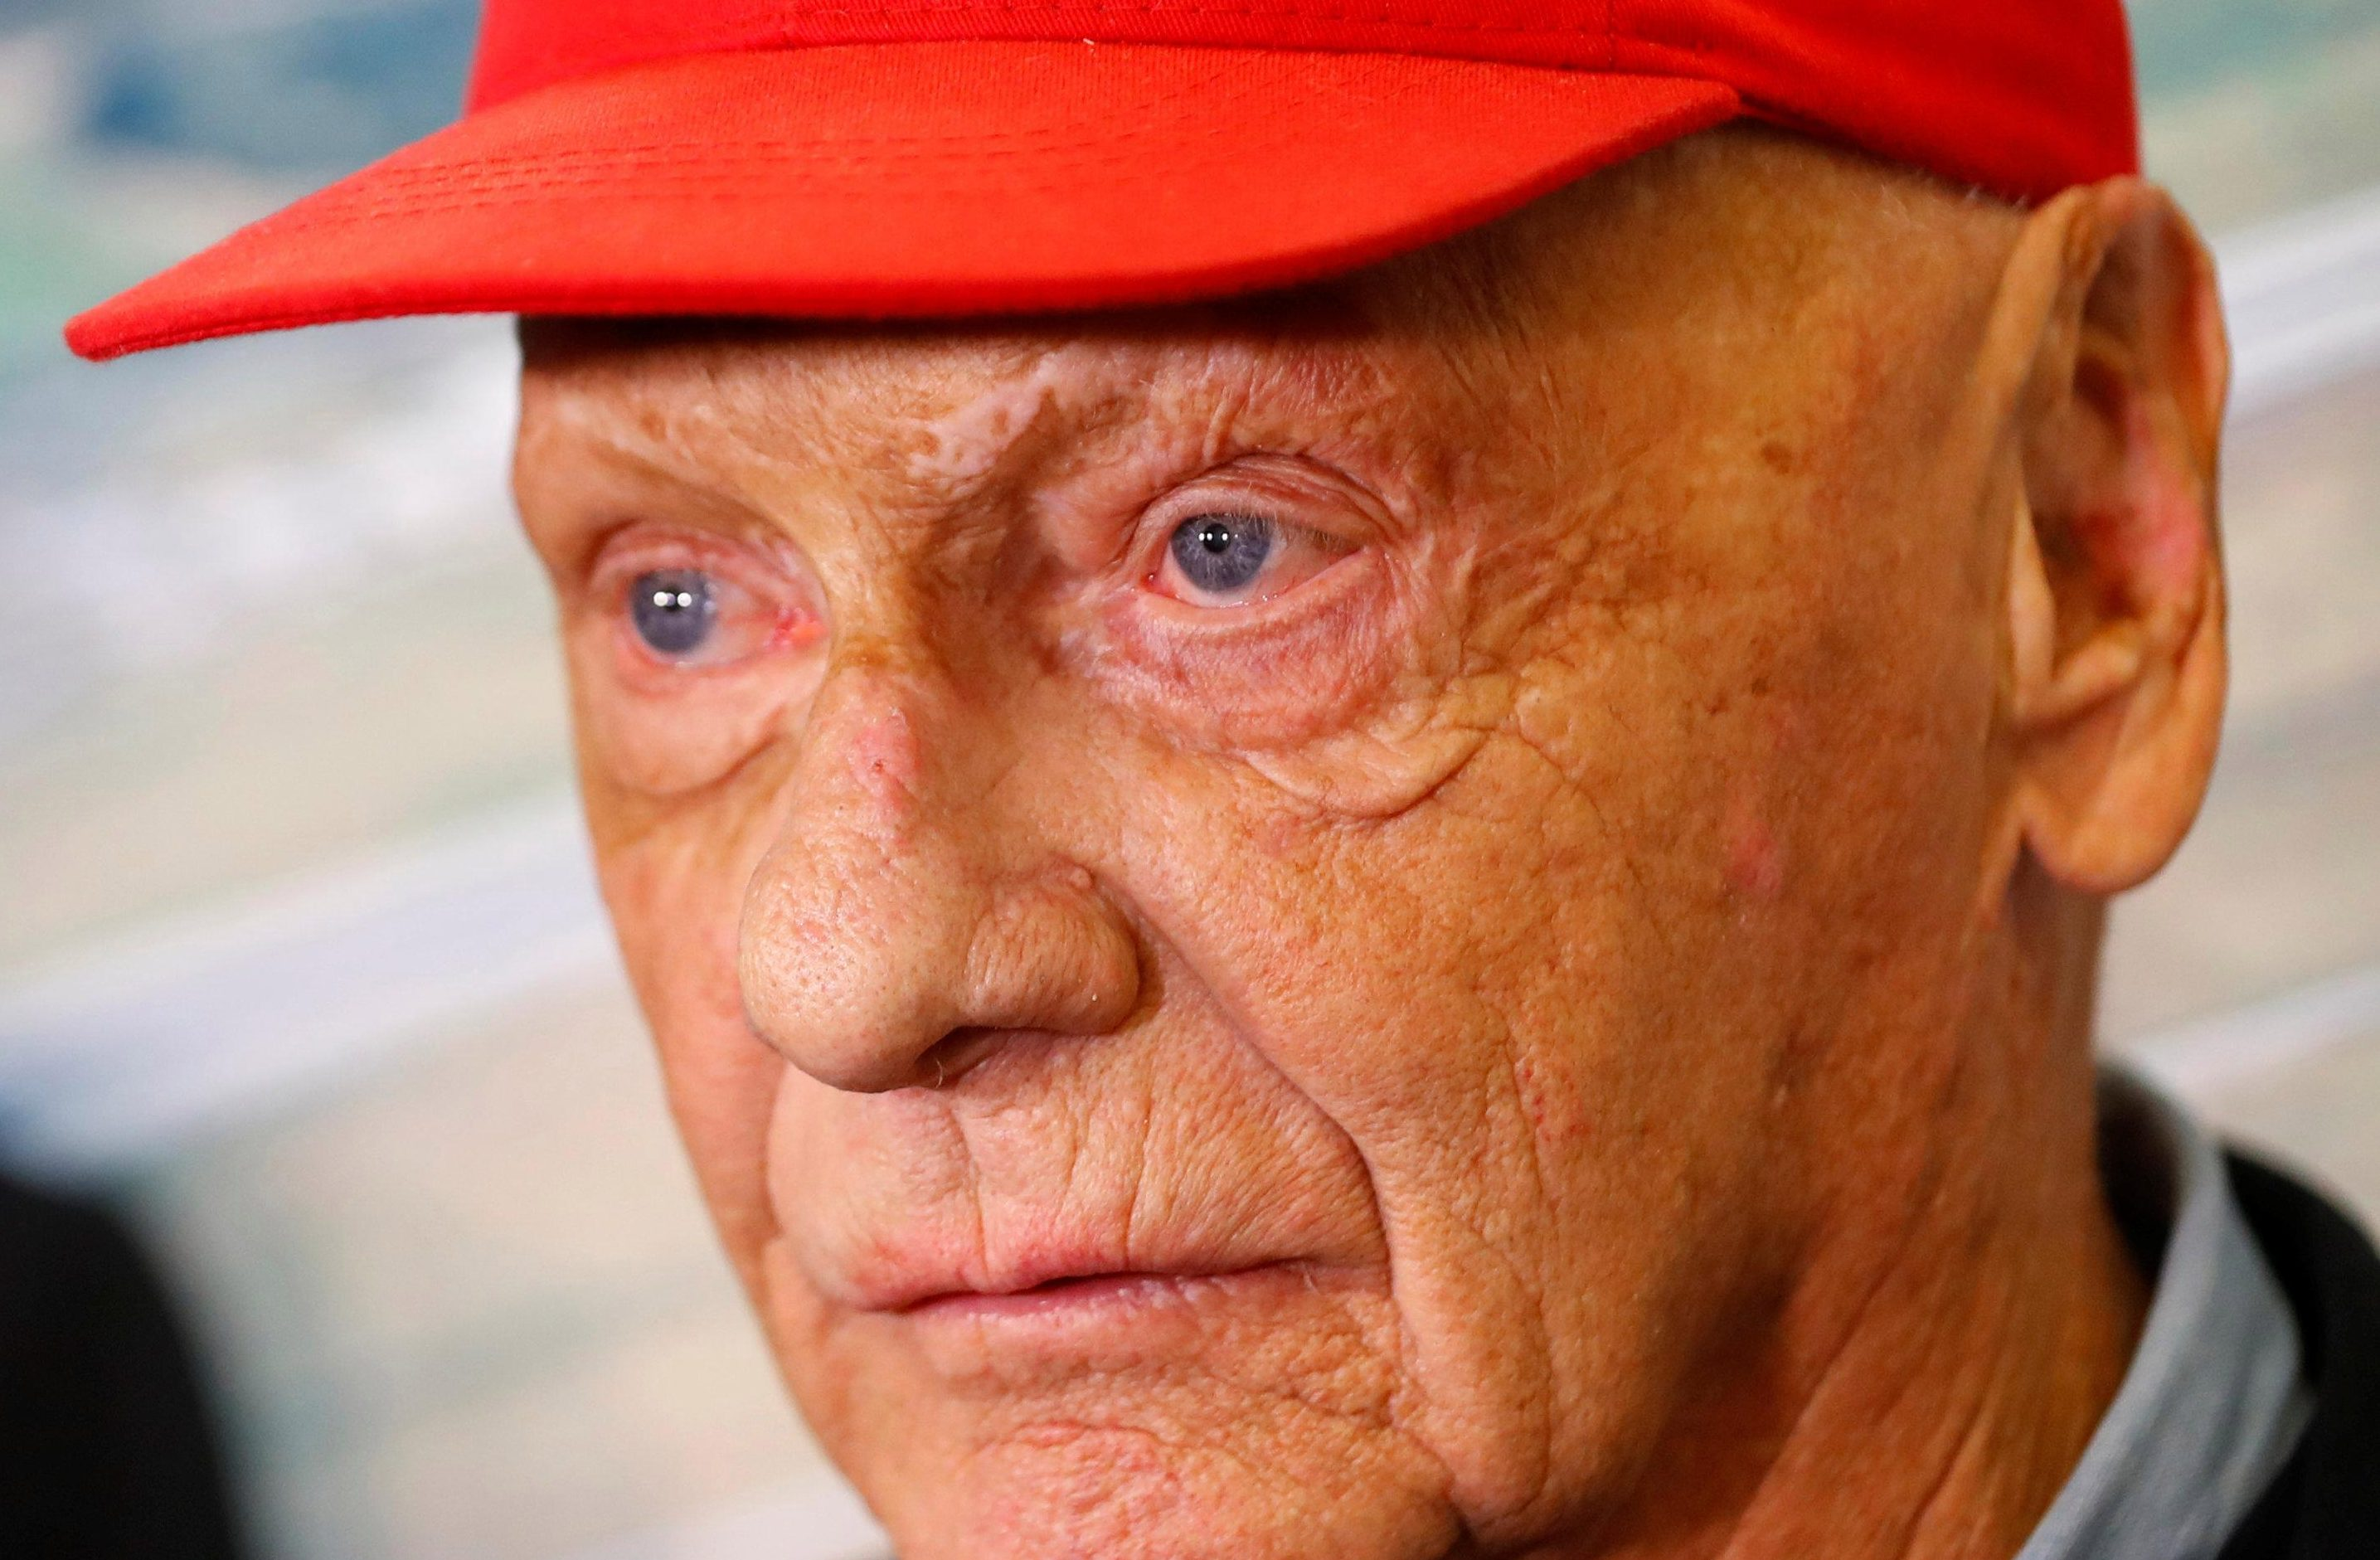 Austrian Niki Lauda, who has left hospital and is recovering from the serious surgery, won the Formula One world title in 1975, 1977 and 1984